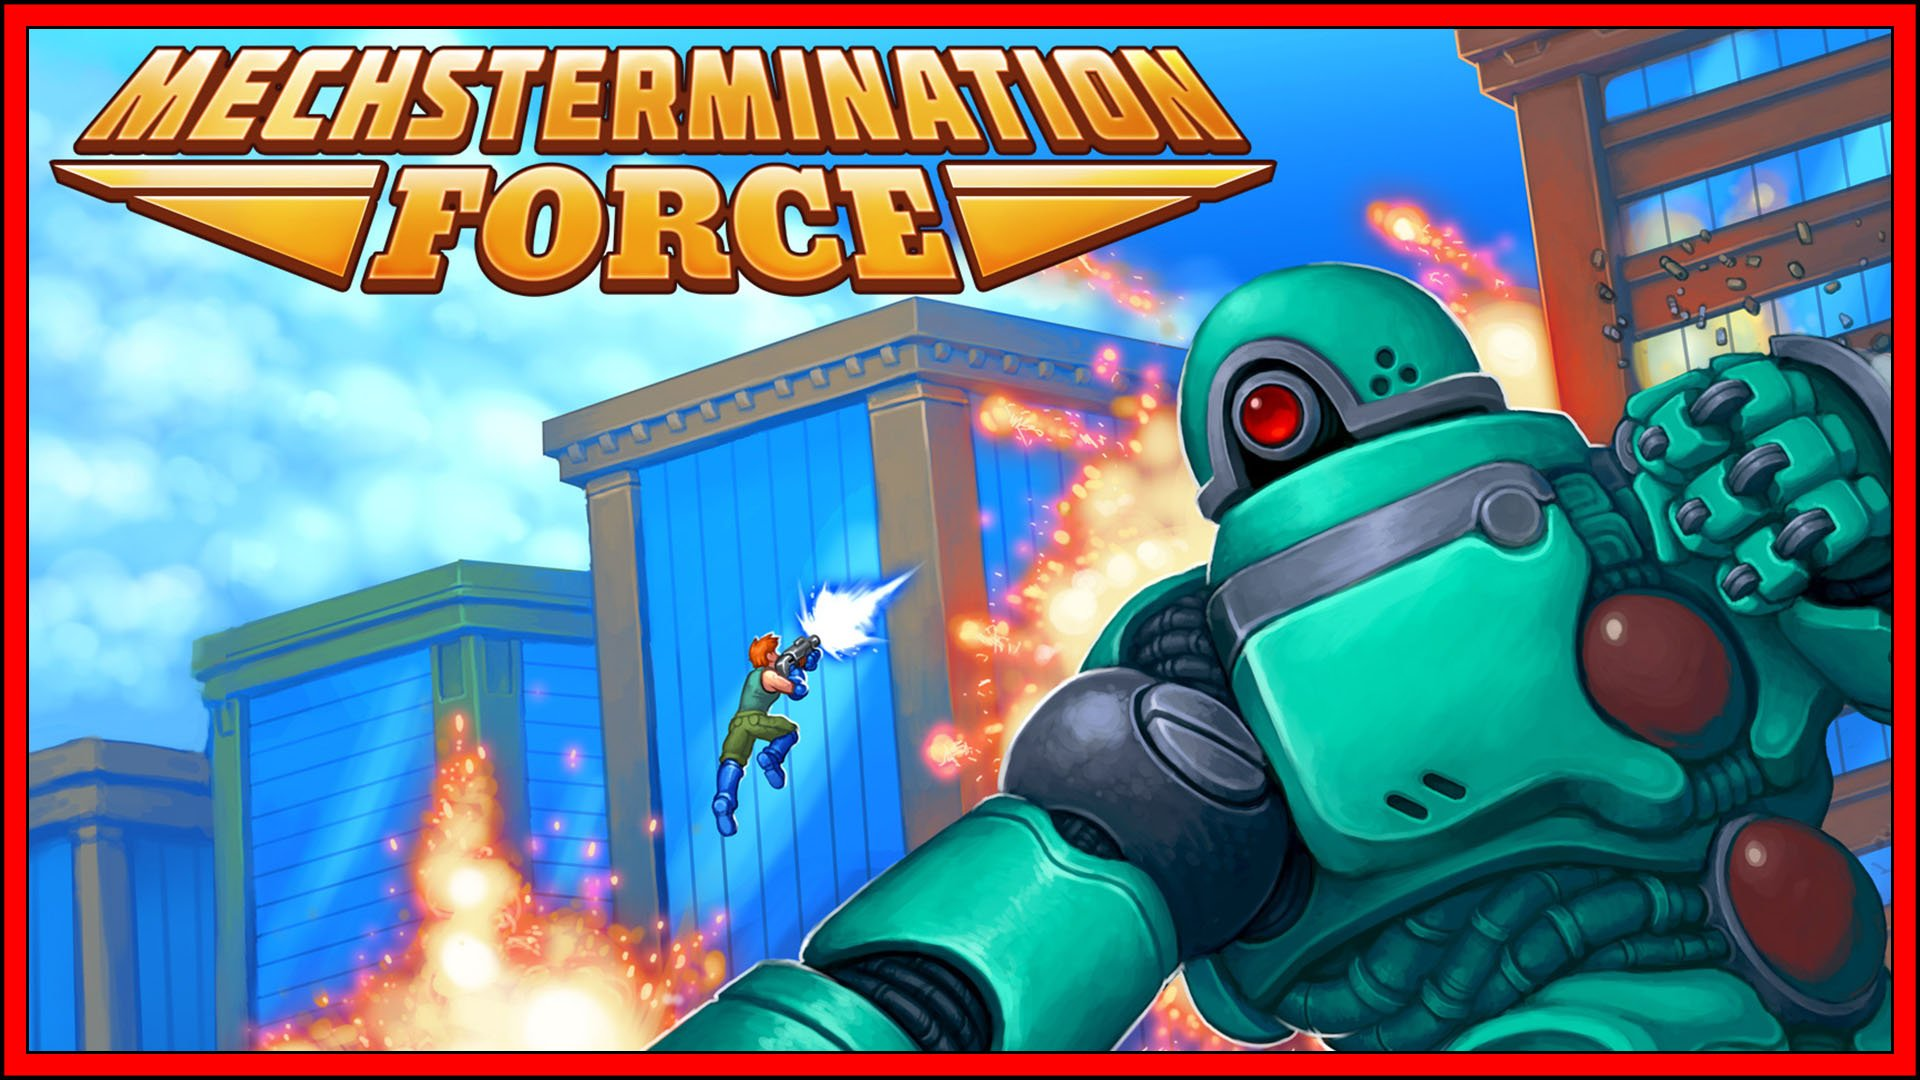 Mechstermination Force Fi3